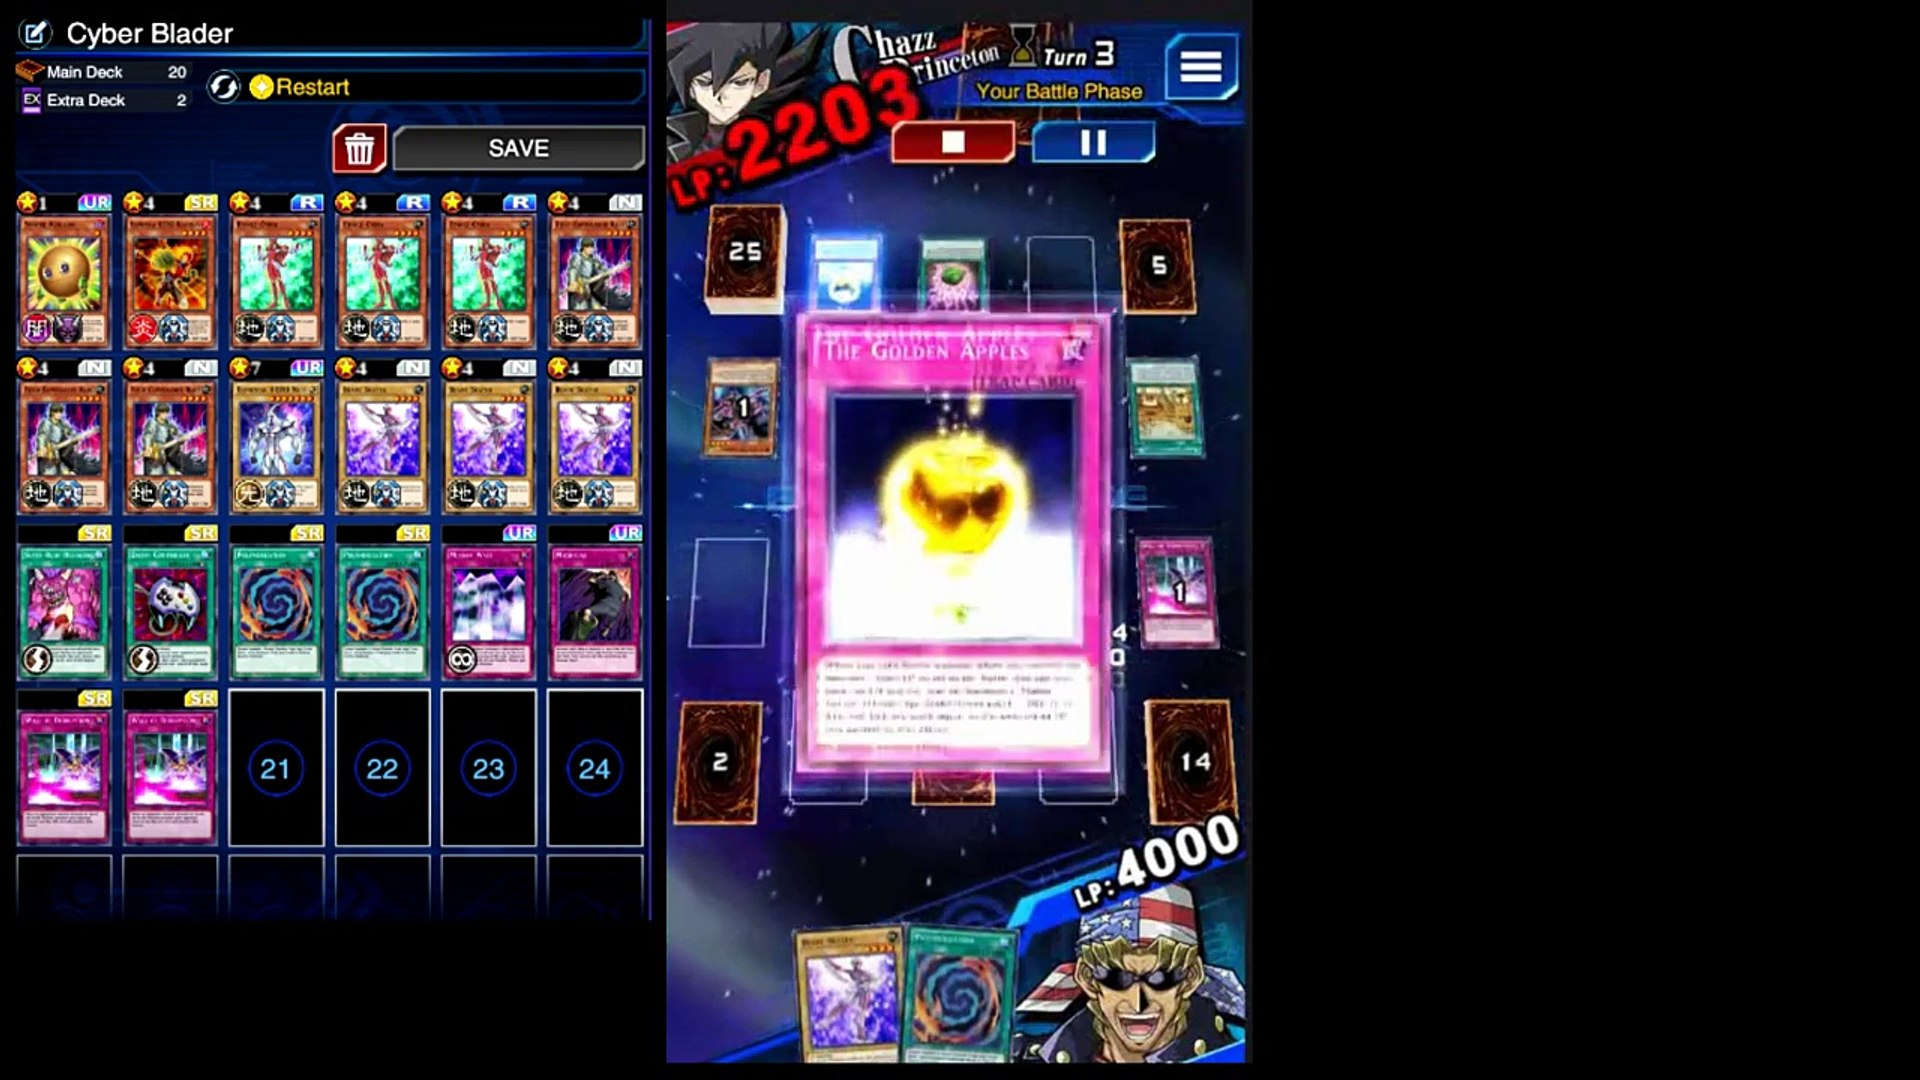 Yu Gi Oh Duel Links Cyber Blader Dailymotion Video